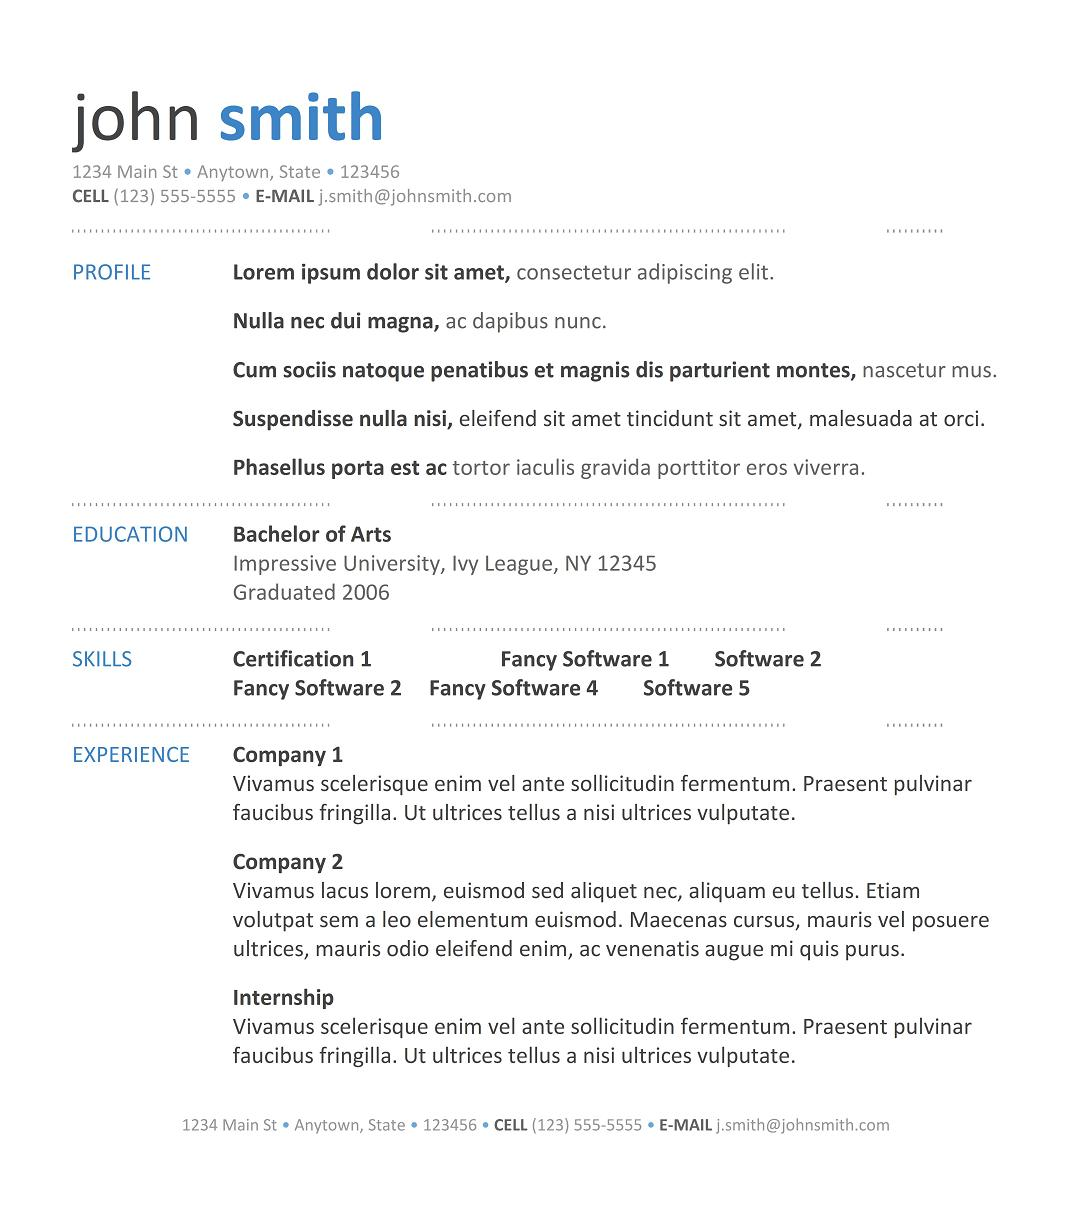 professional resume template for freshers - Best Professional Resume Samples